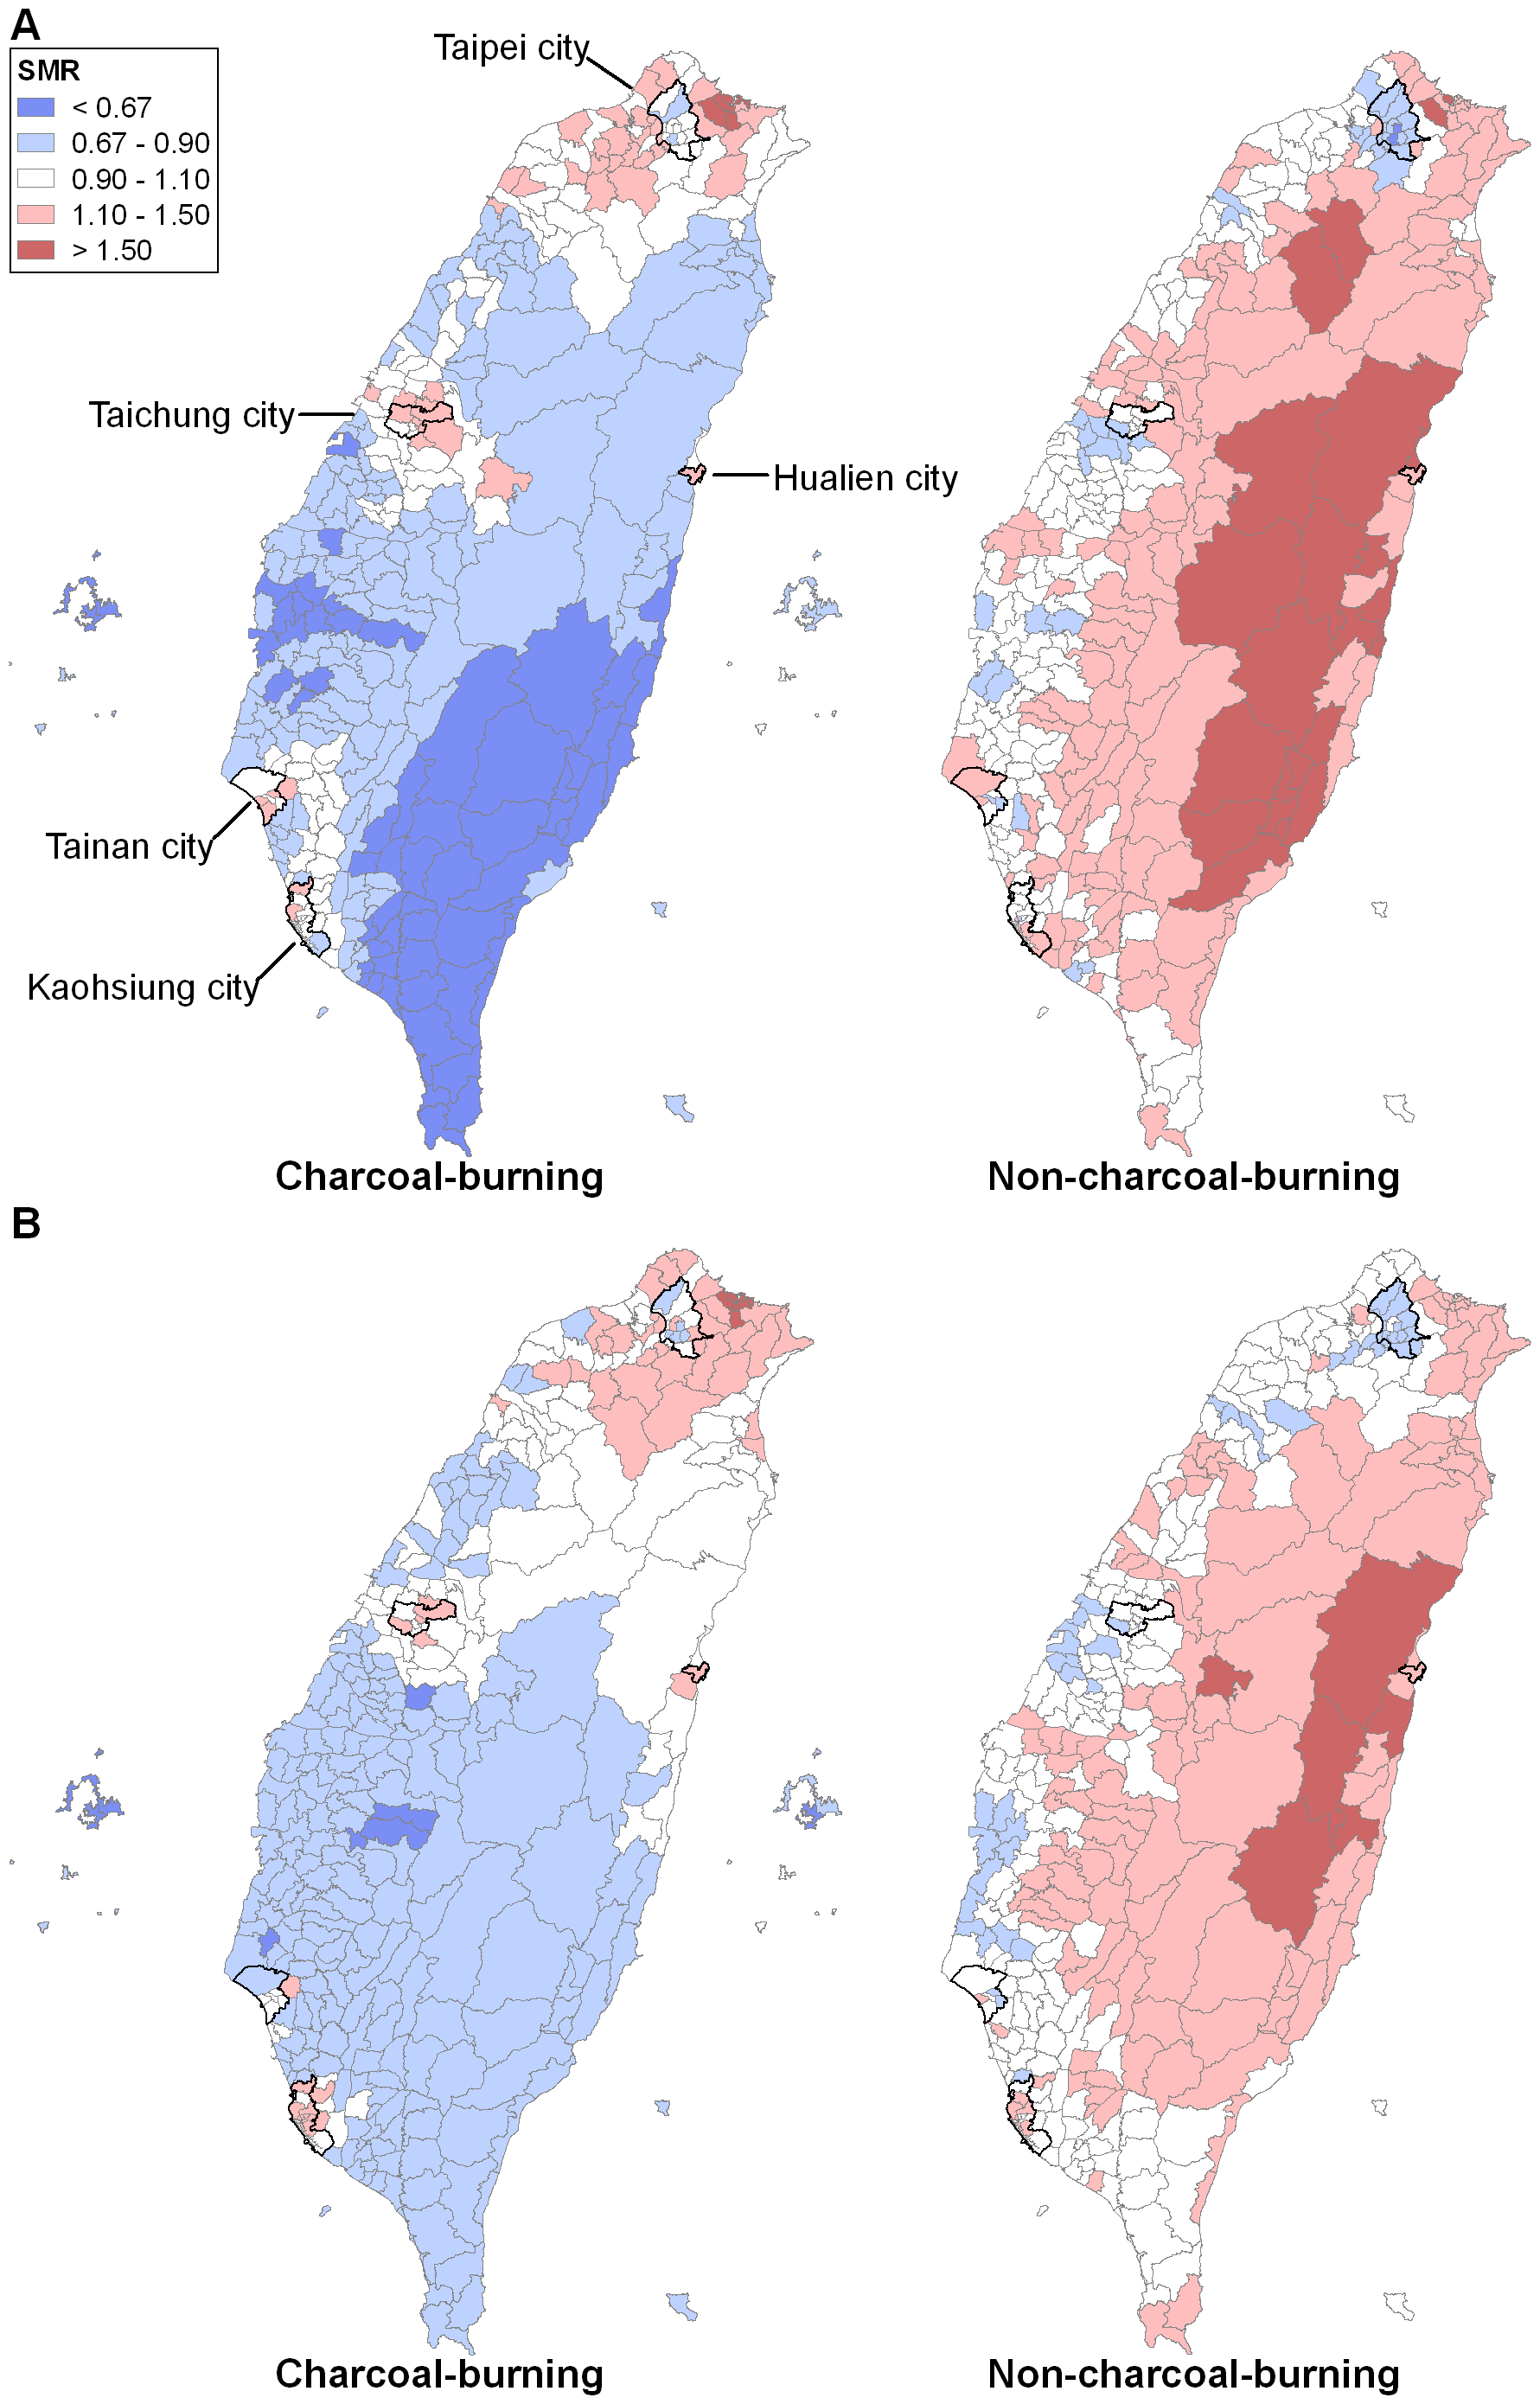 Maps of SMRs for charcoal-burning and non-charcoal-burning suicides (including registered suicides and undetermined deaths) across 358 townships in Taiwan, 1999–2007, with five major cities highlighted.